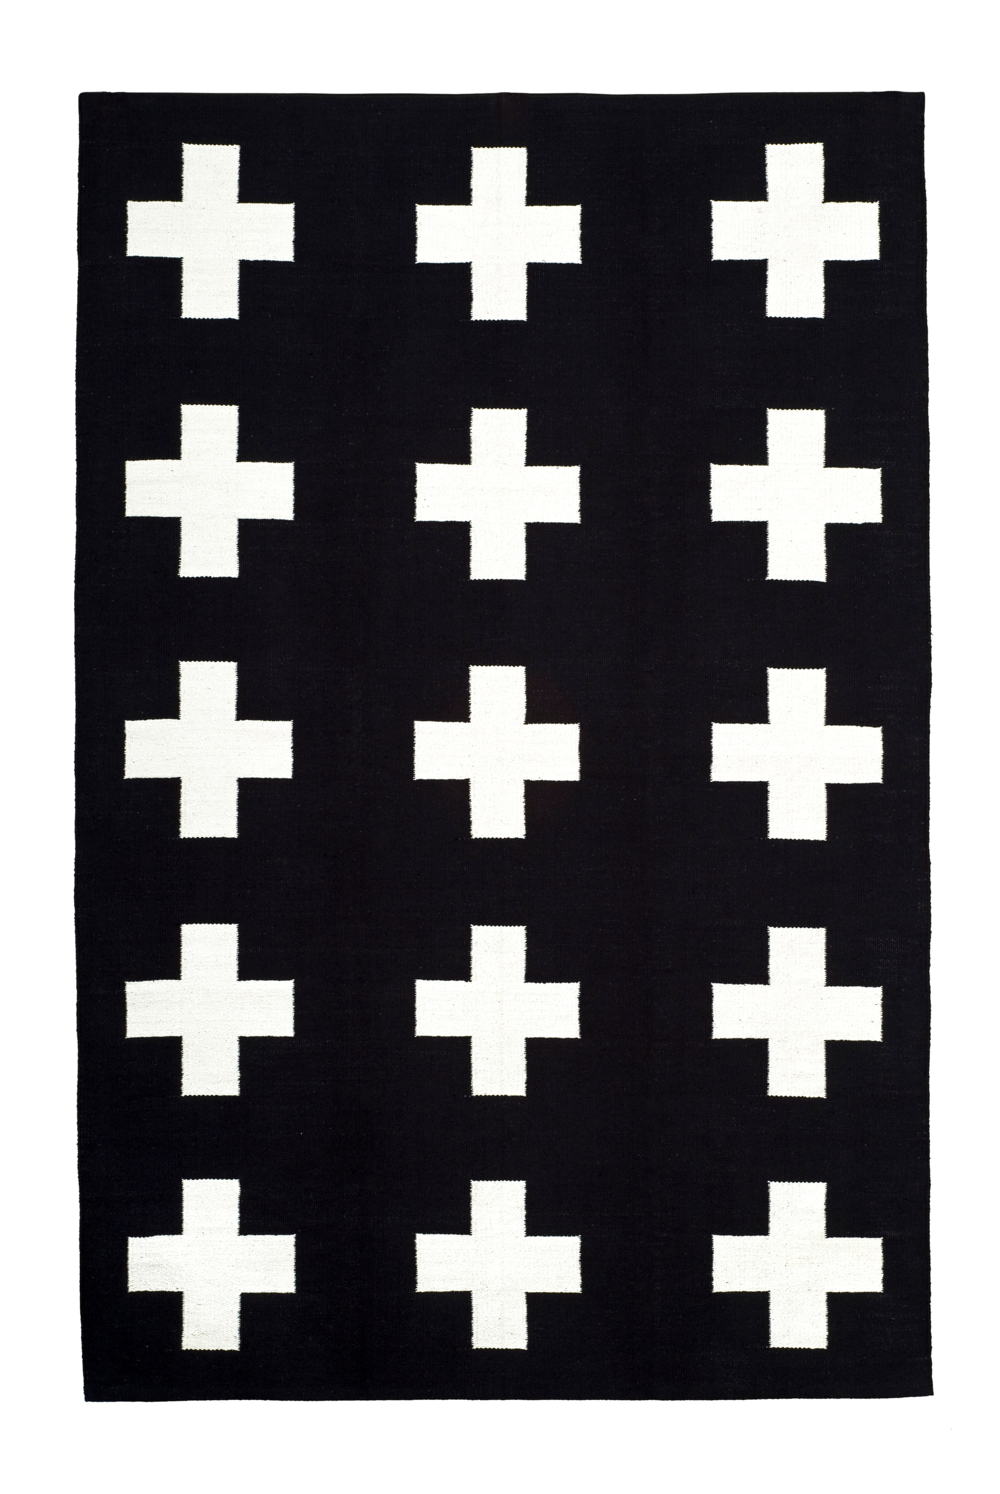 Vloerkleed black white cross. Mooi!